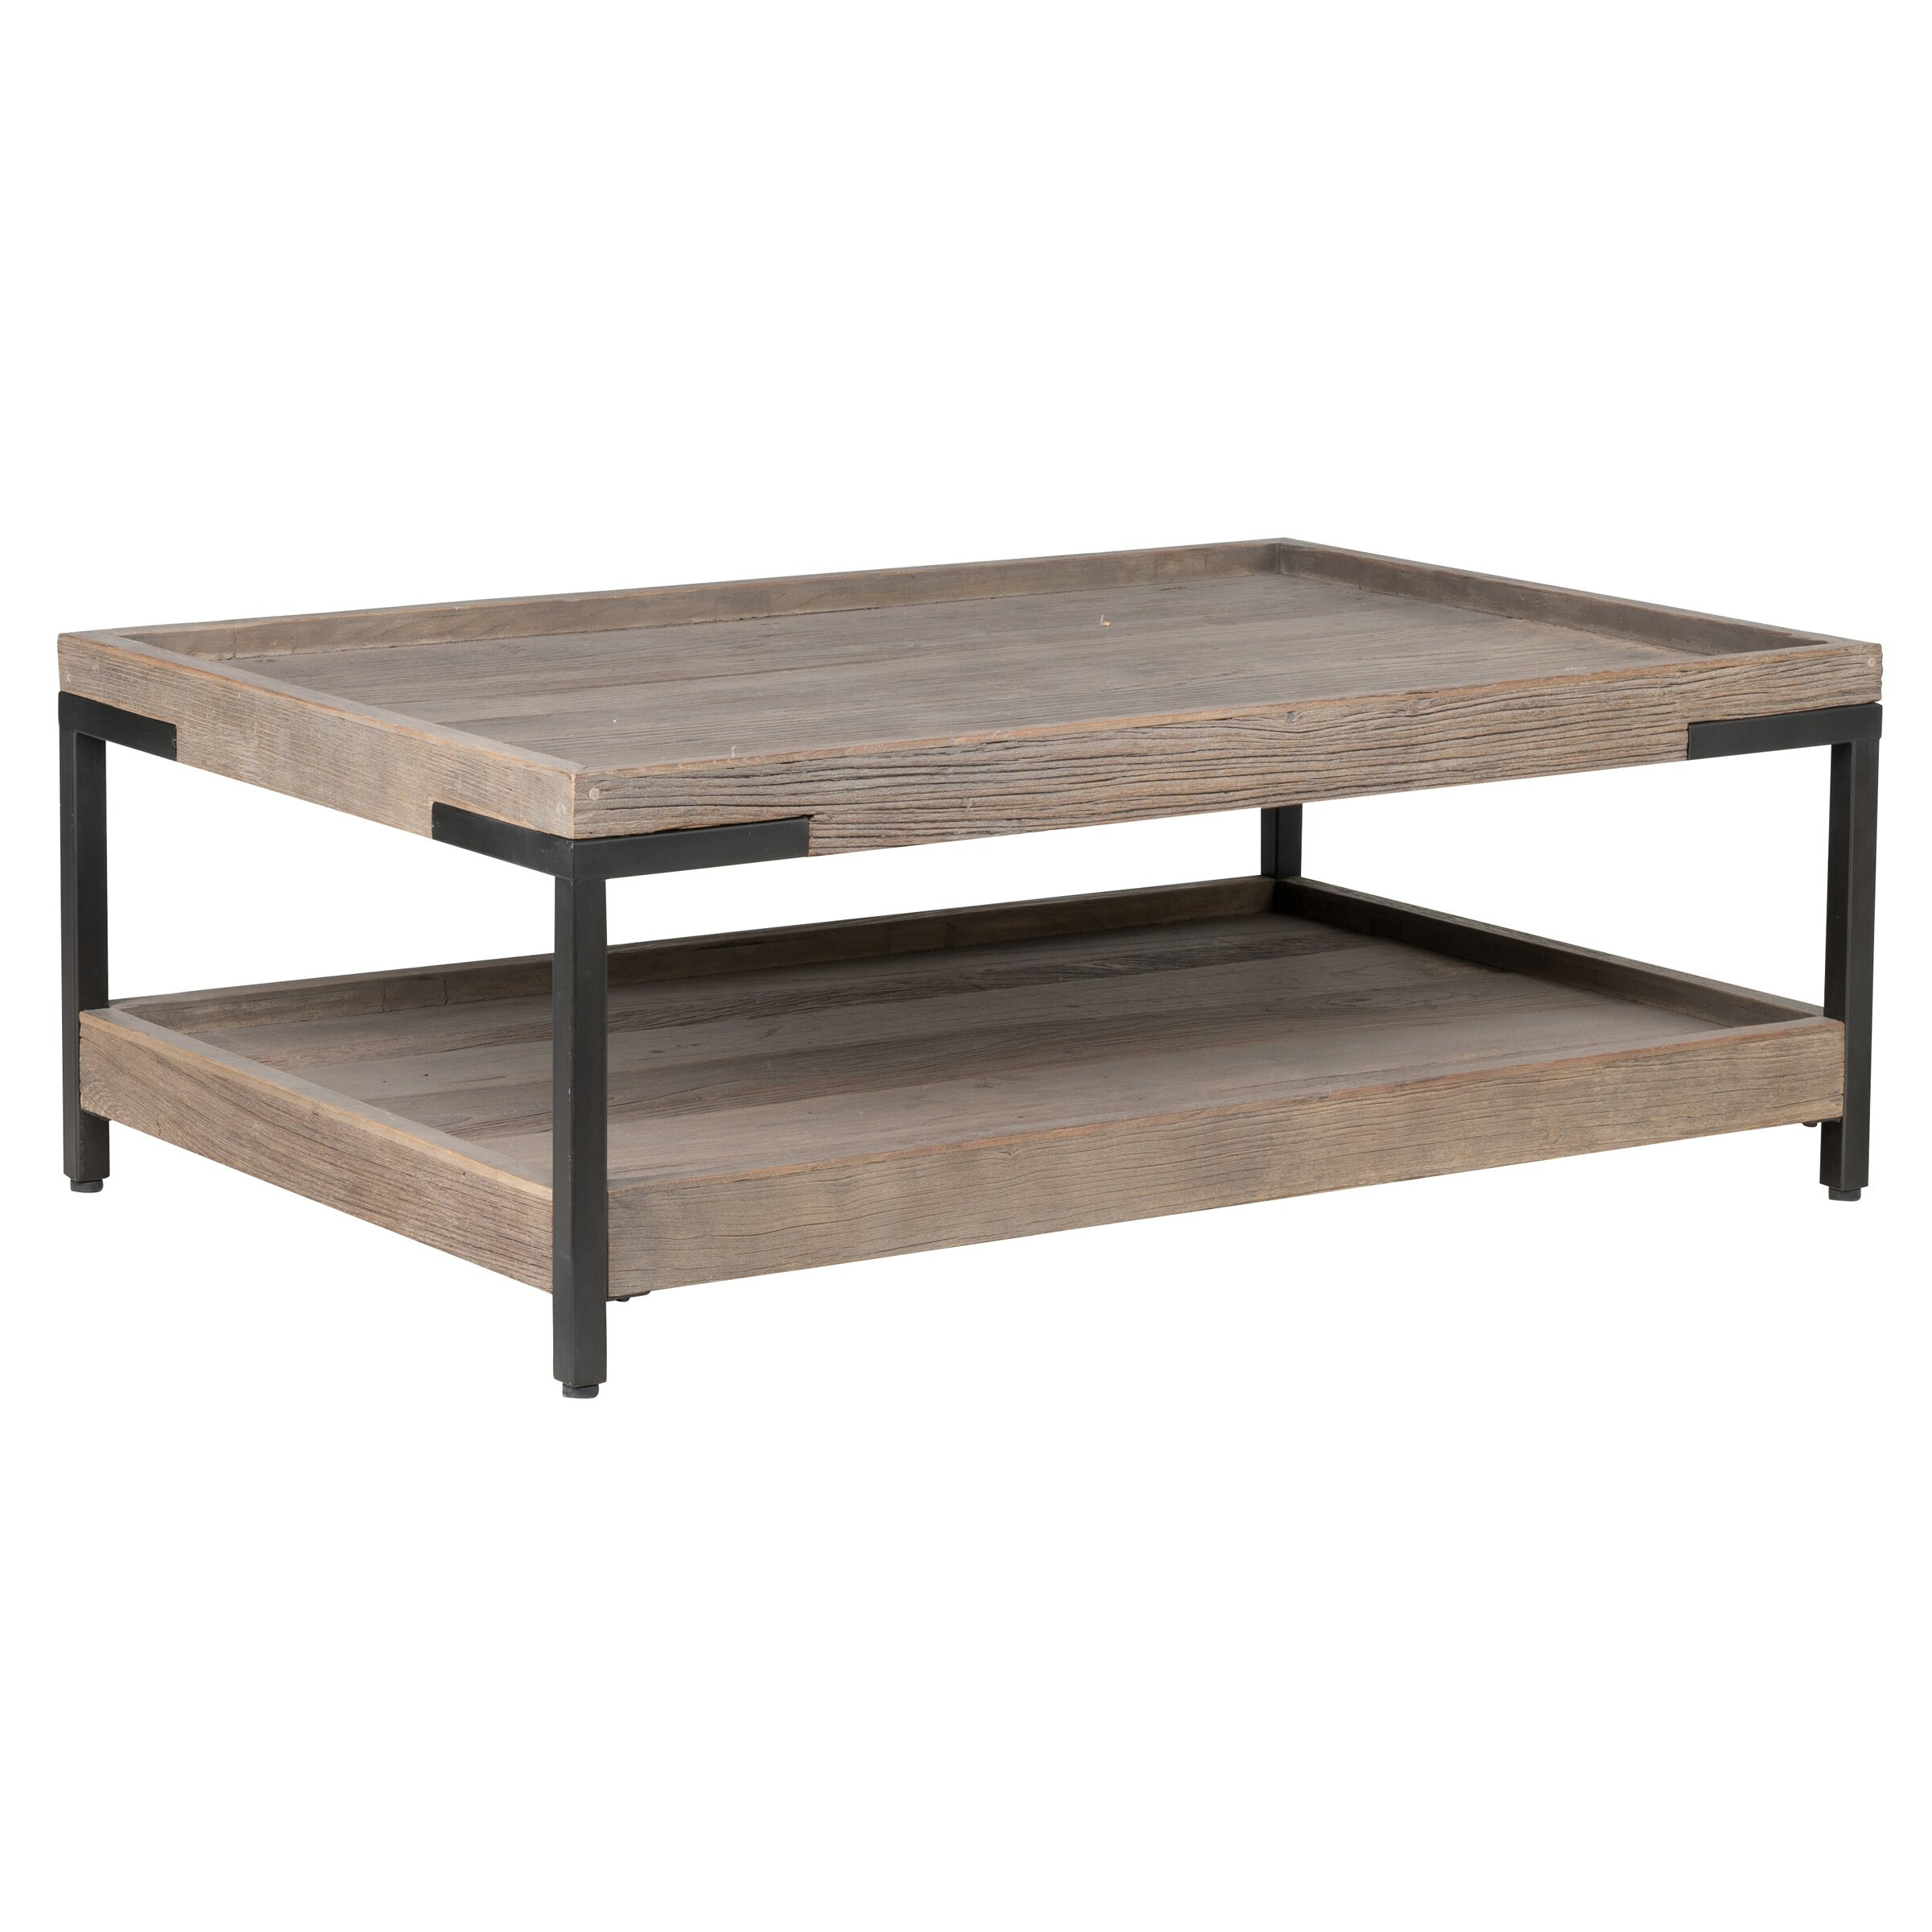 Laurel foundry modern farmhouse nena coffee table wayfair for Modern farmhouse coffee table